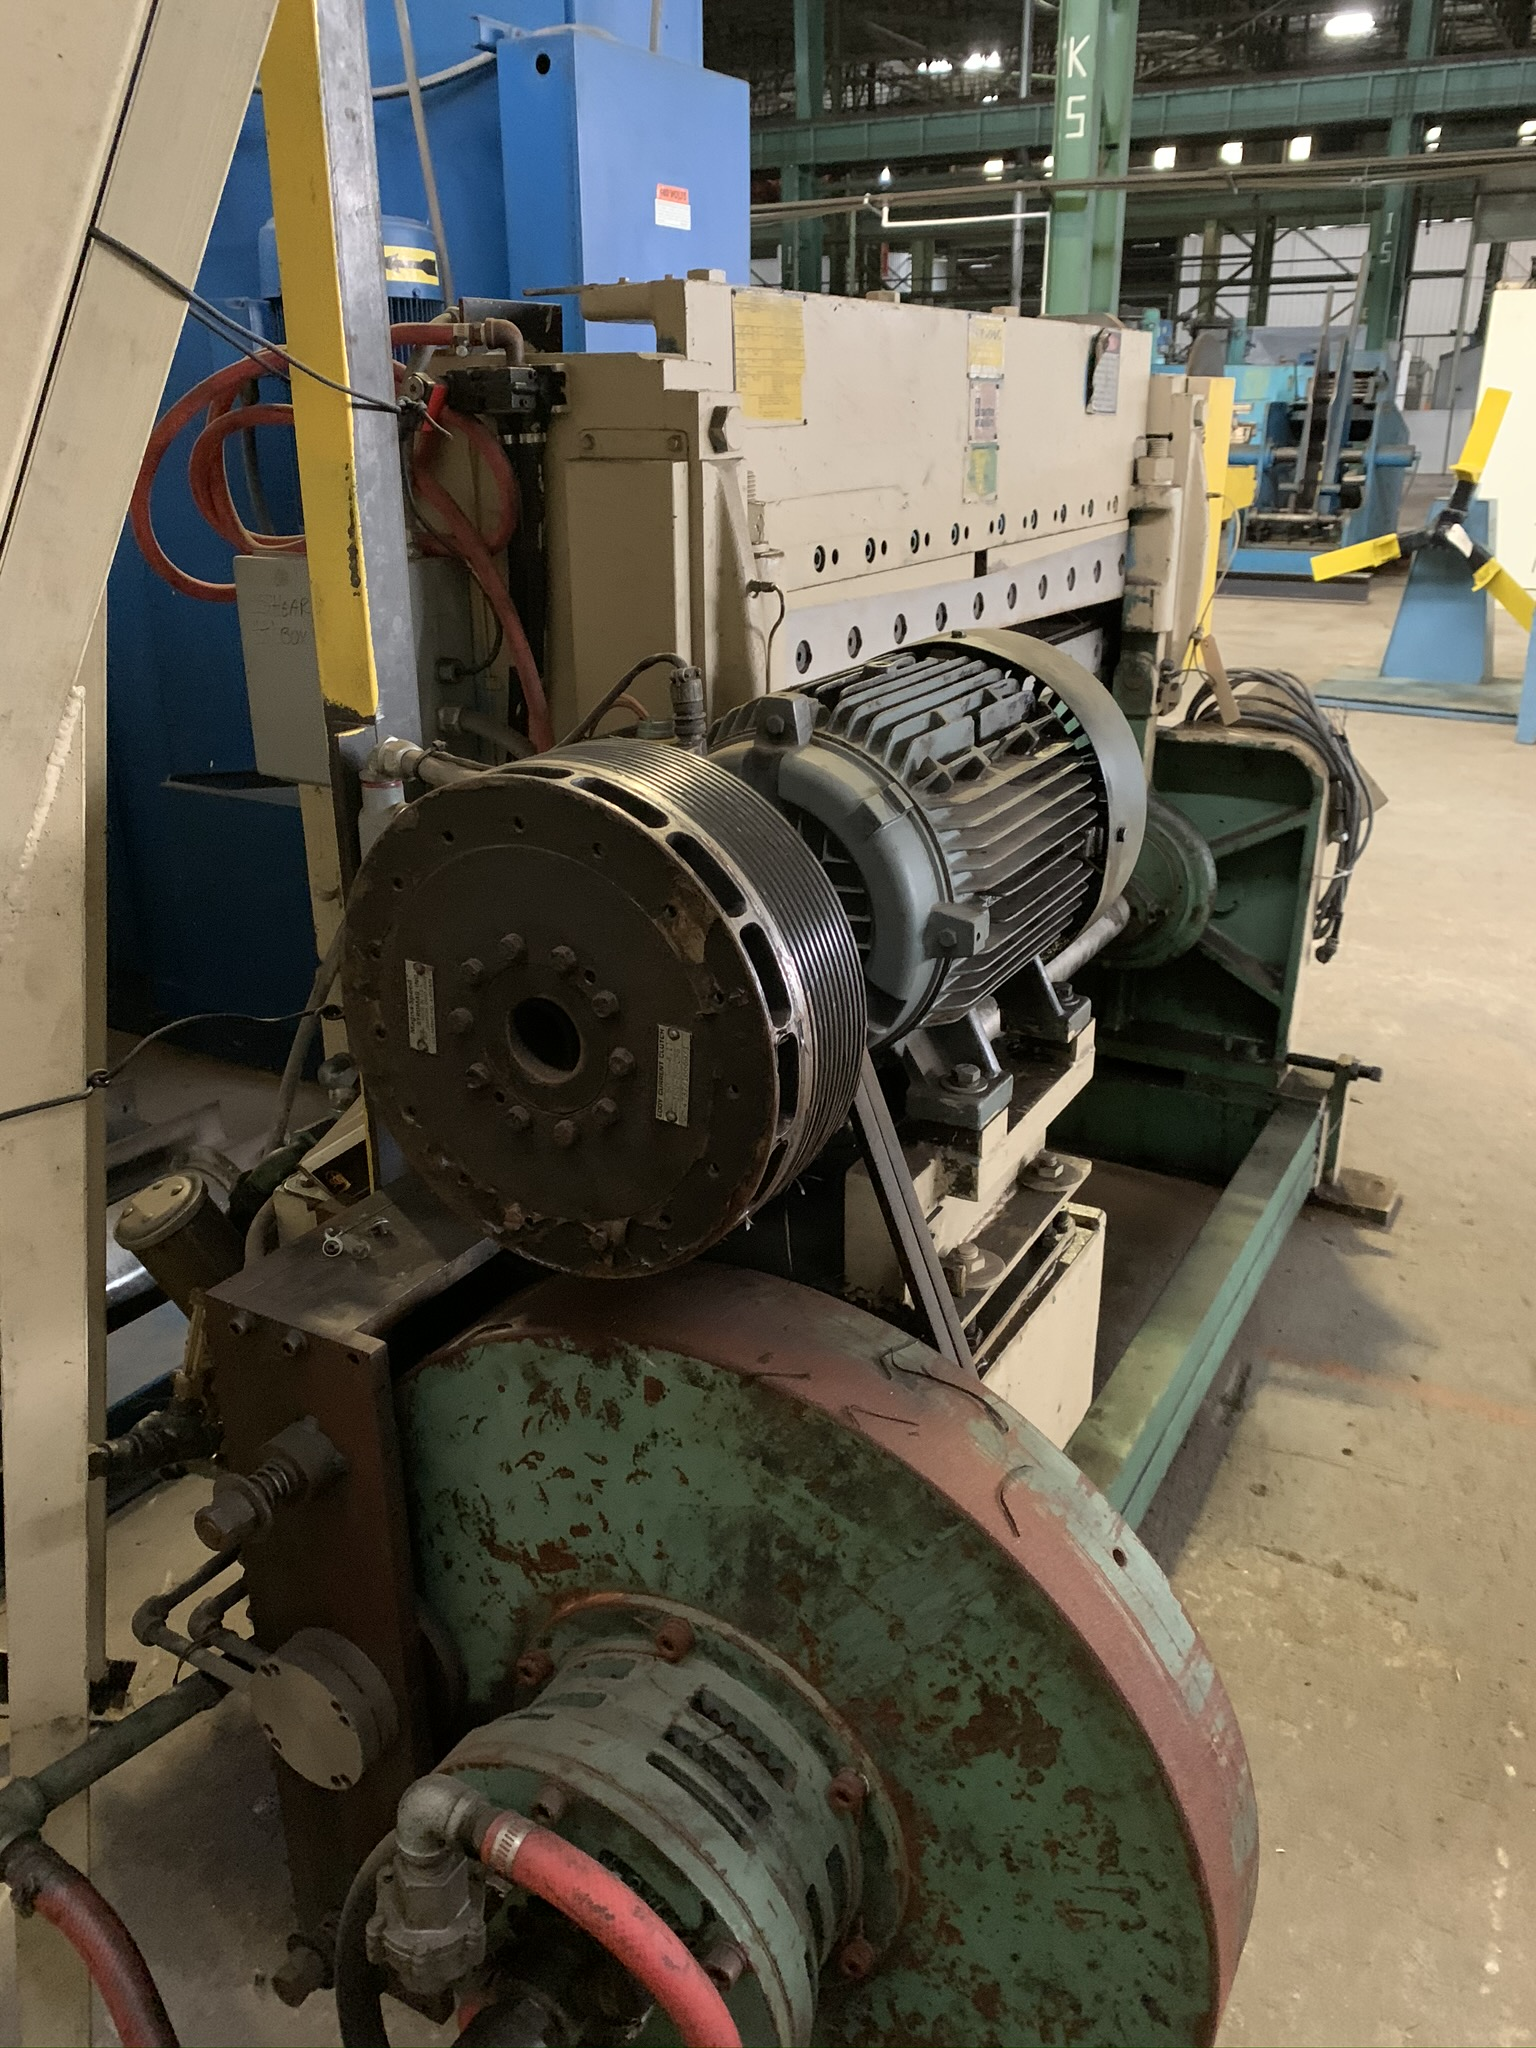 """WYSONG MODEL 1052 RKB LINE SHEAR; S/N P97-100, 52"""" WIDTH, AIR CLUTCH, BOW TIE BLADE, 15 HP 230/460 - Image 3 of 5"""